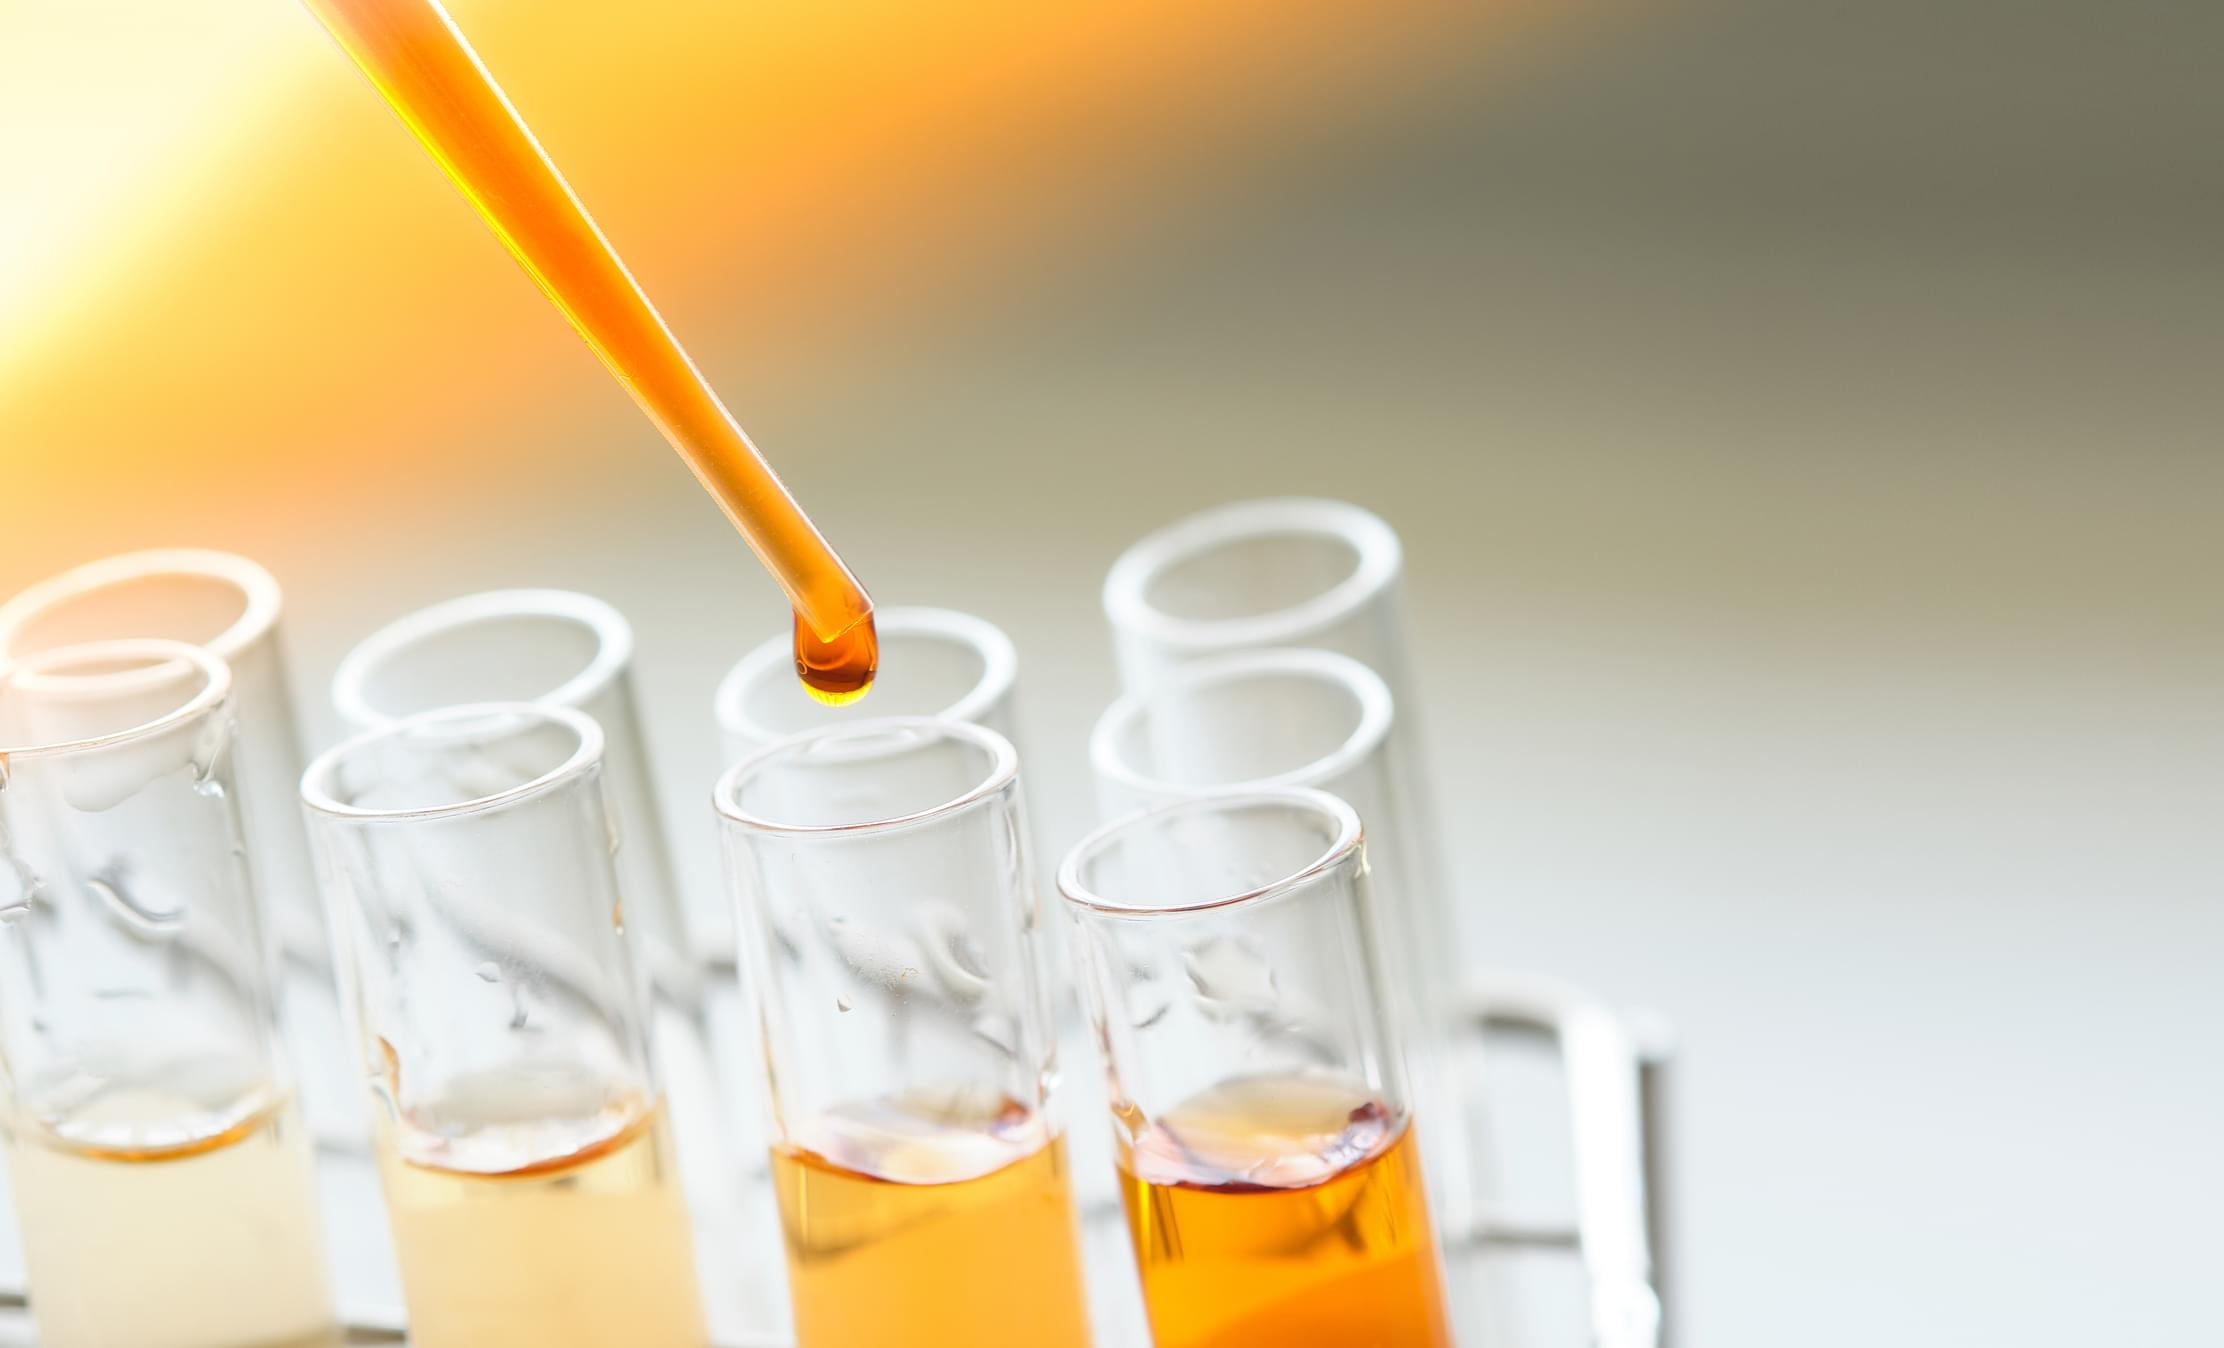 equipment and glassware for test product extraction and orange color solution, in the chemistry laboratory.